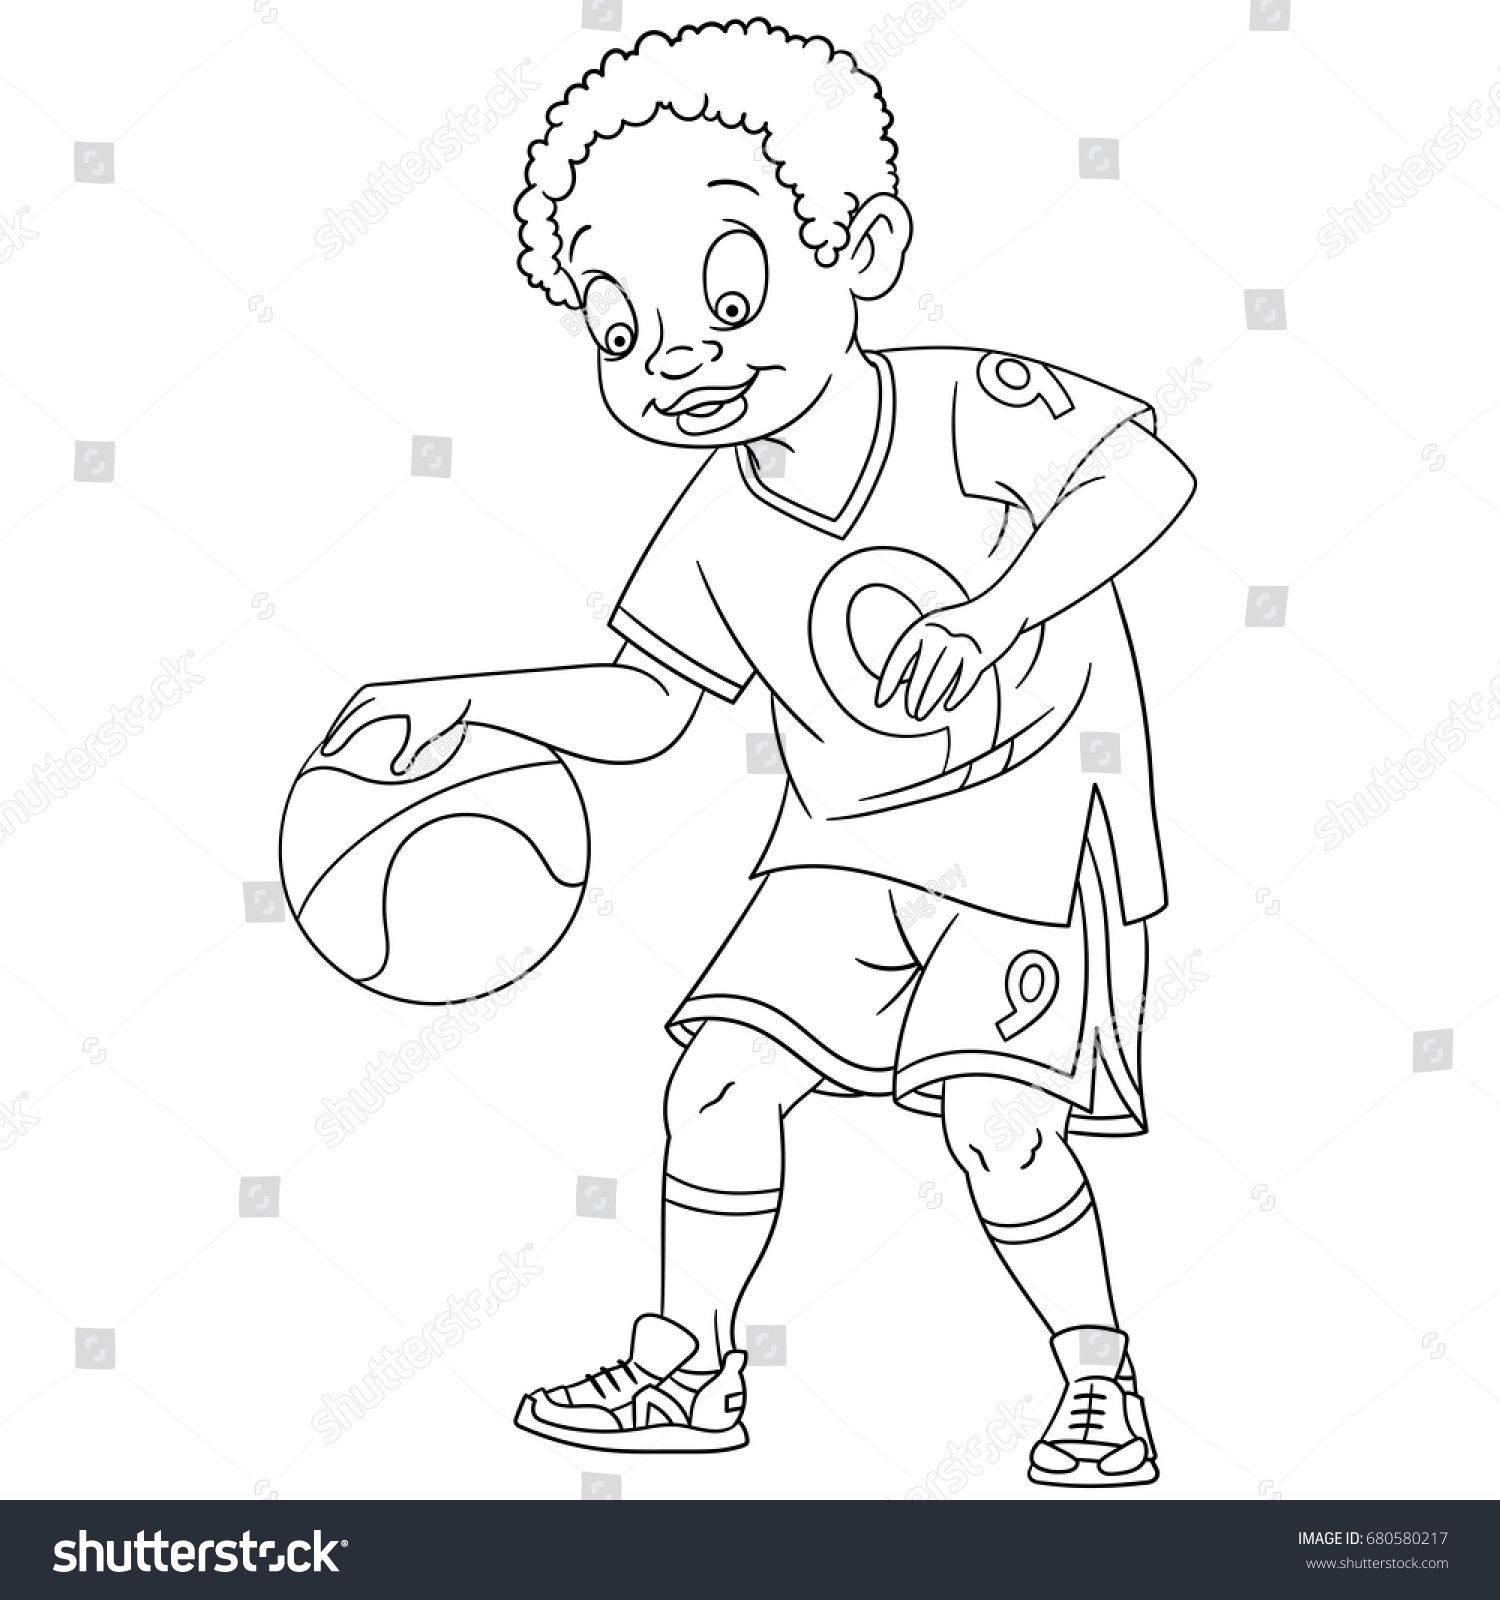 Coloring Page Of Boy Playing Basketball Colouring Book For Kids